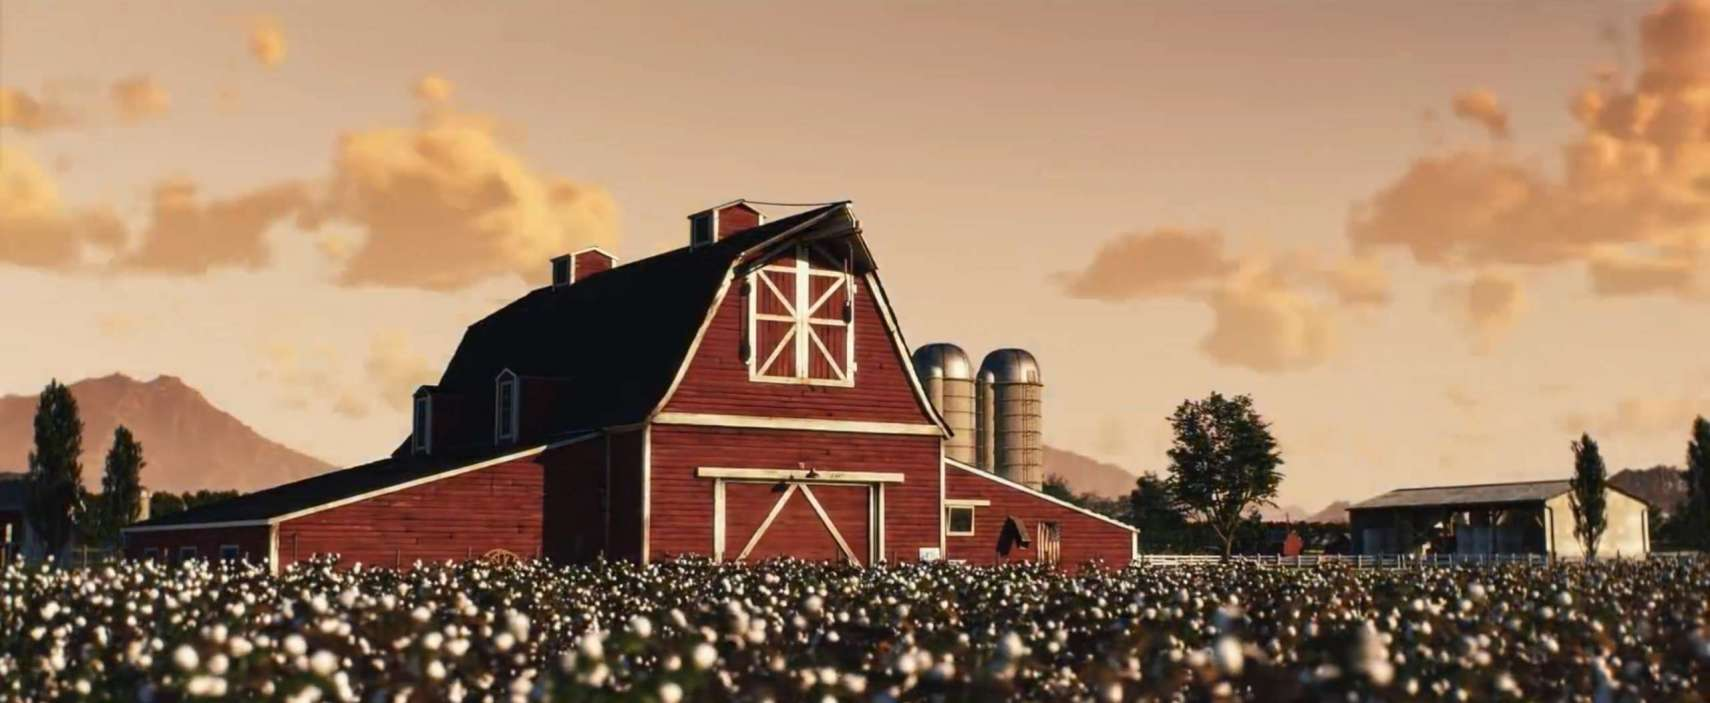 Farming Simulator 19 Is Now Completely Free Through The Epic Games Store